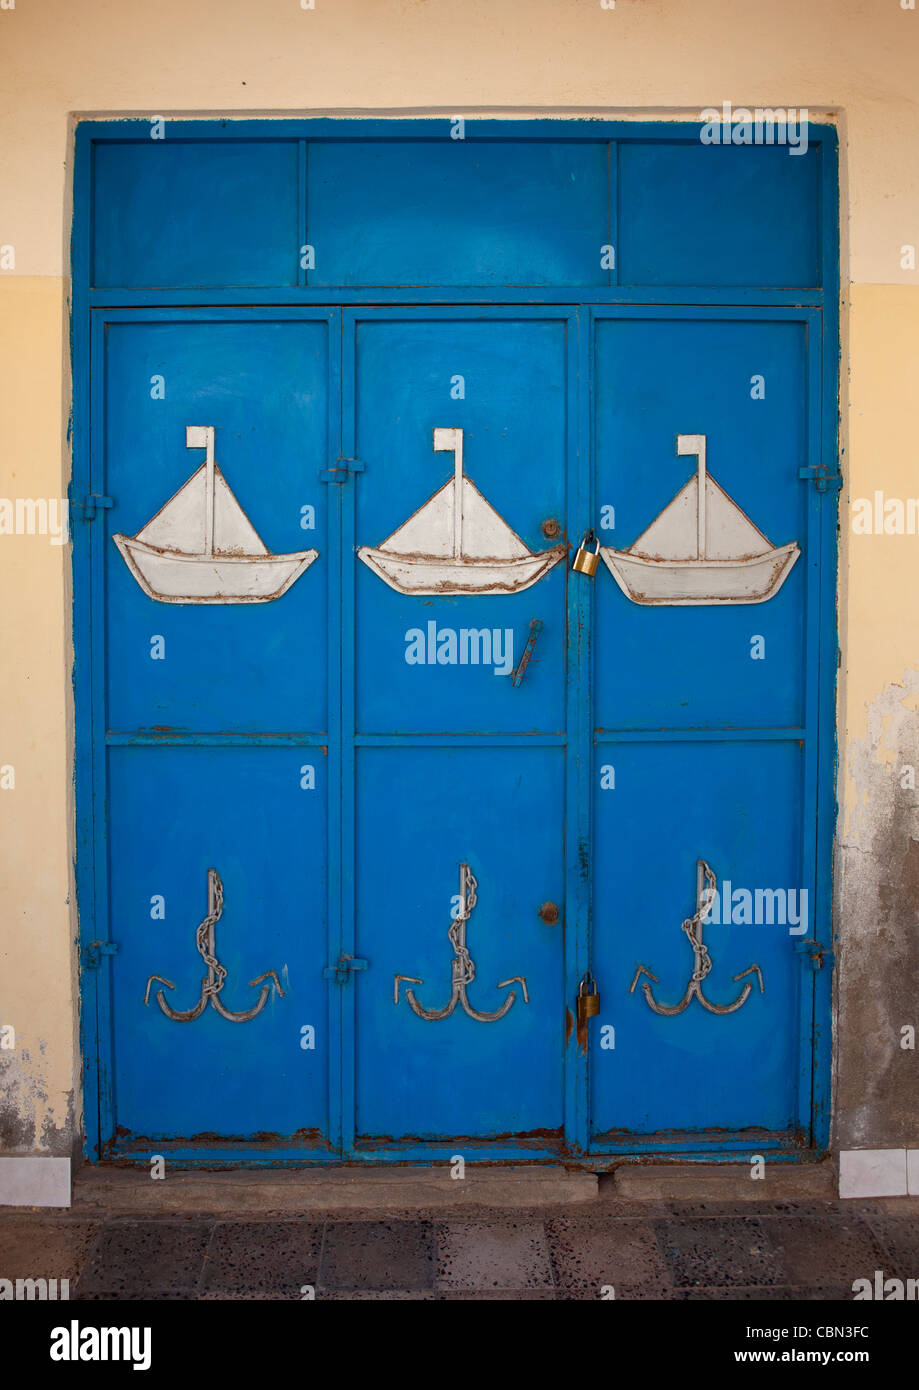 White Boats Painted On A Blue Door In Berbera Somaliland - Stock Image